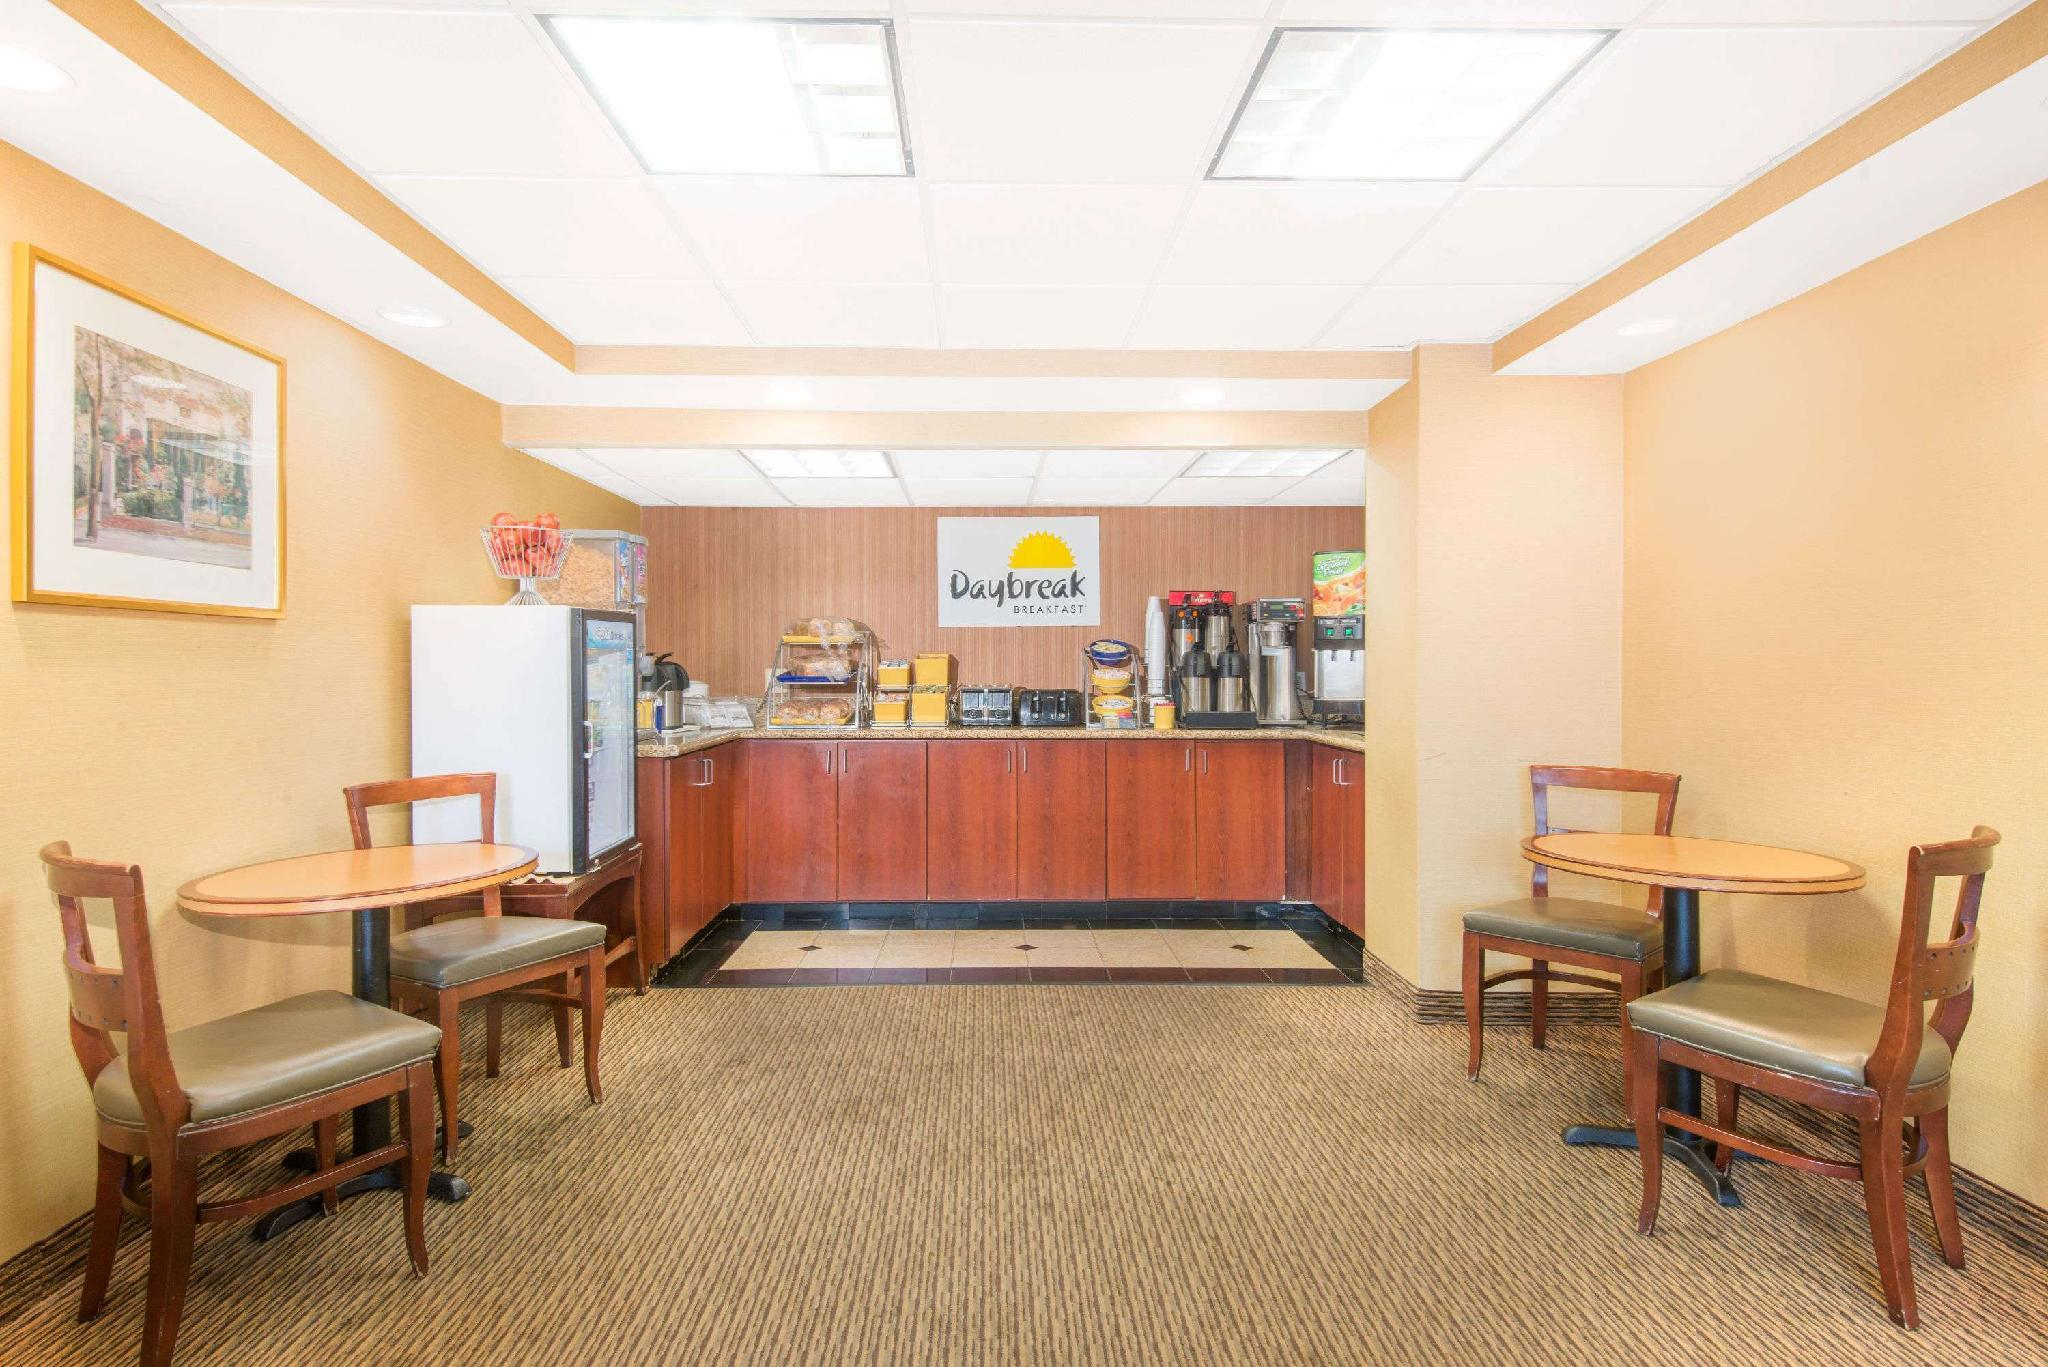 Days Inn by Wyndham Arlington Pentagon